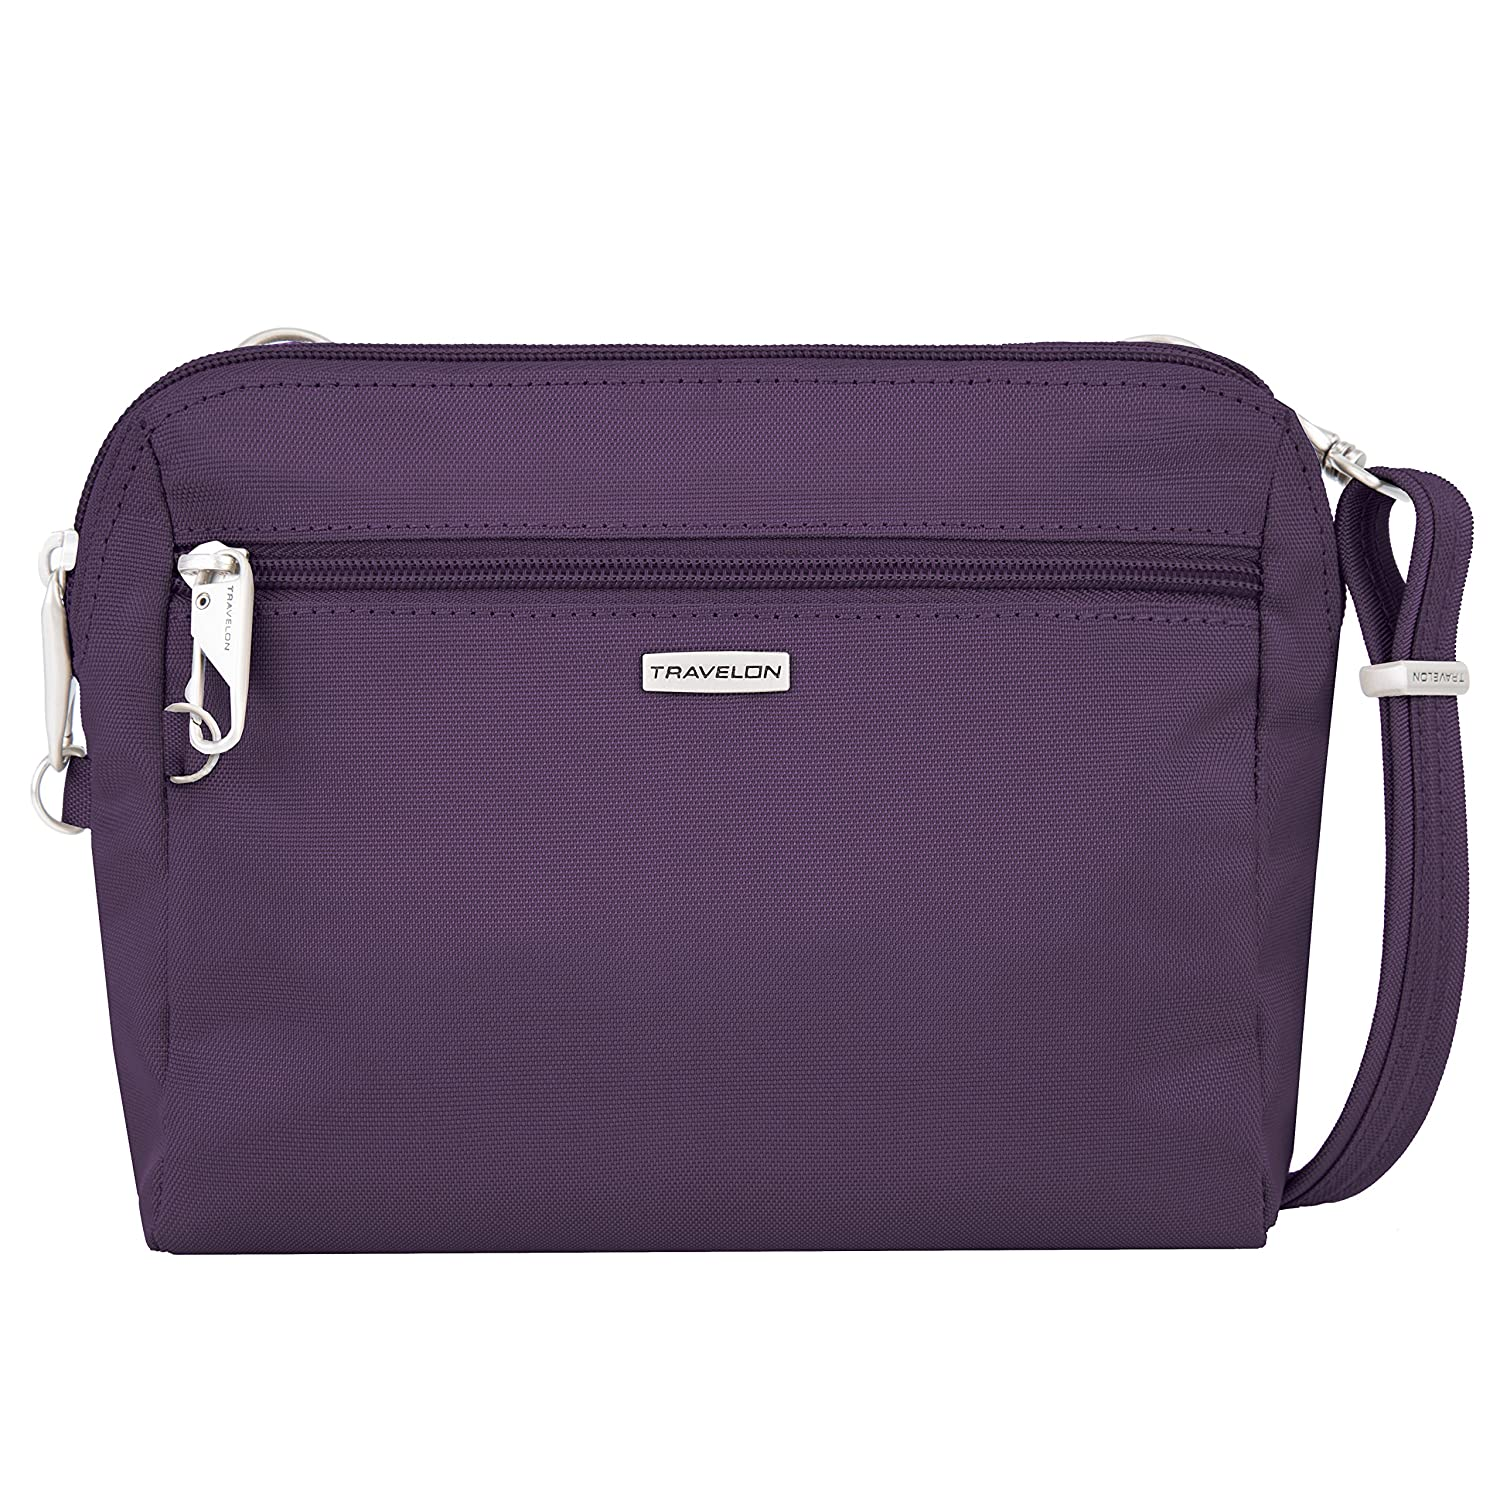 Travelon 43227 150 Classic Convertible Crossbody and Waist Pack, Purple, One Size TRBO3